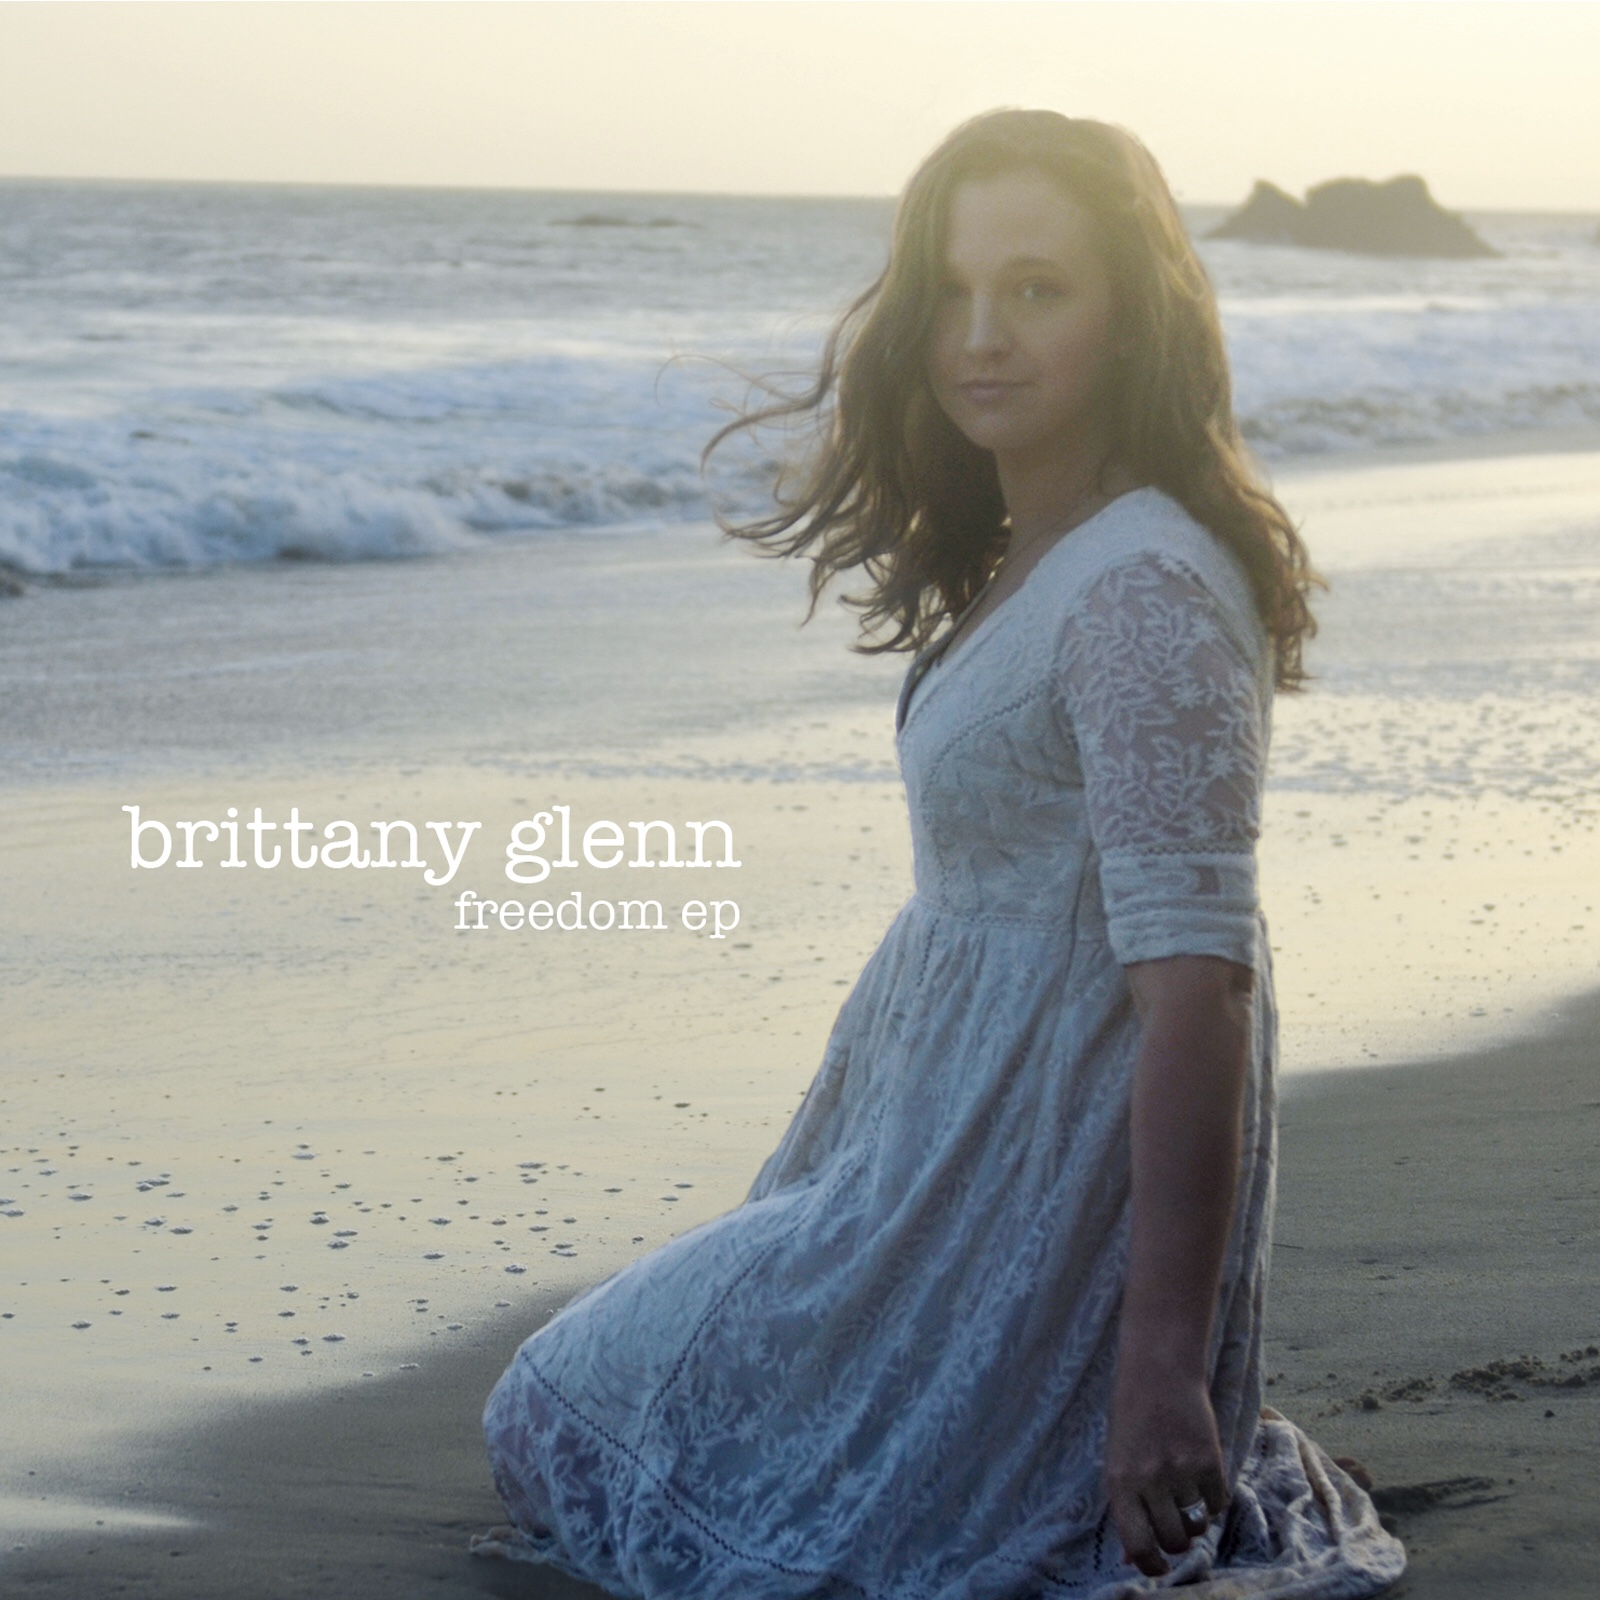 the highly anticipated second album by brittany glenn - listen to the digital album nowget your signed copy here